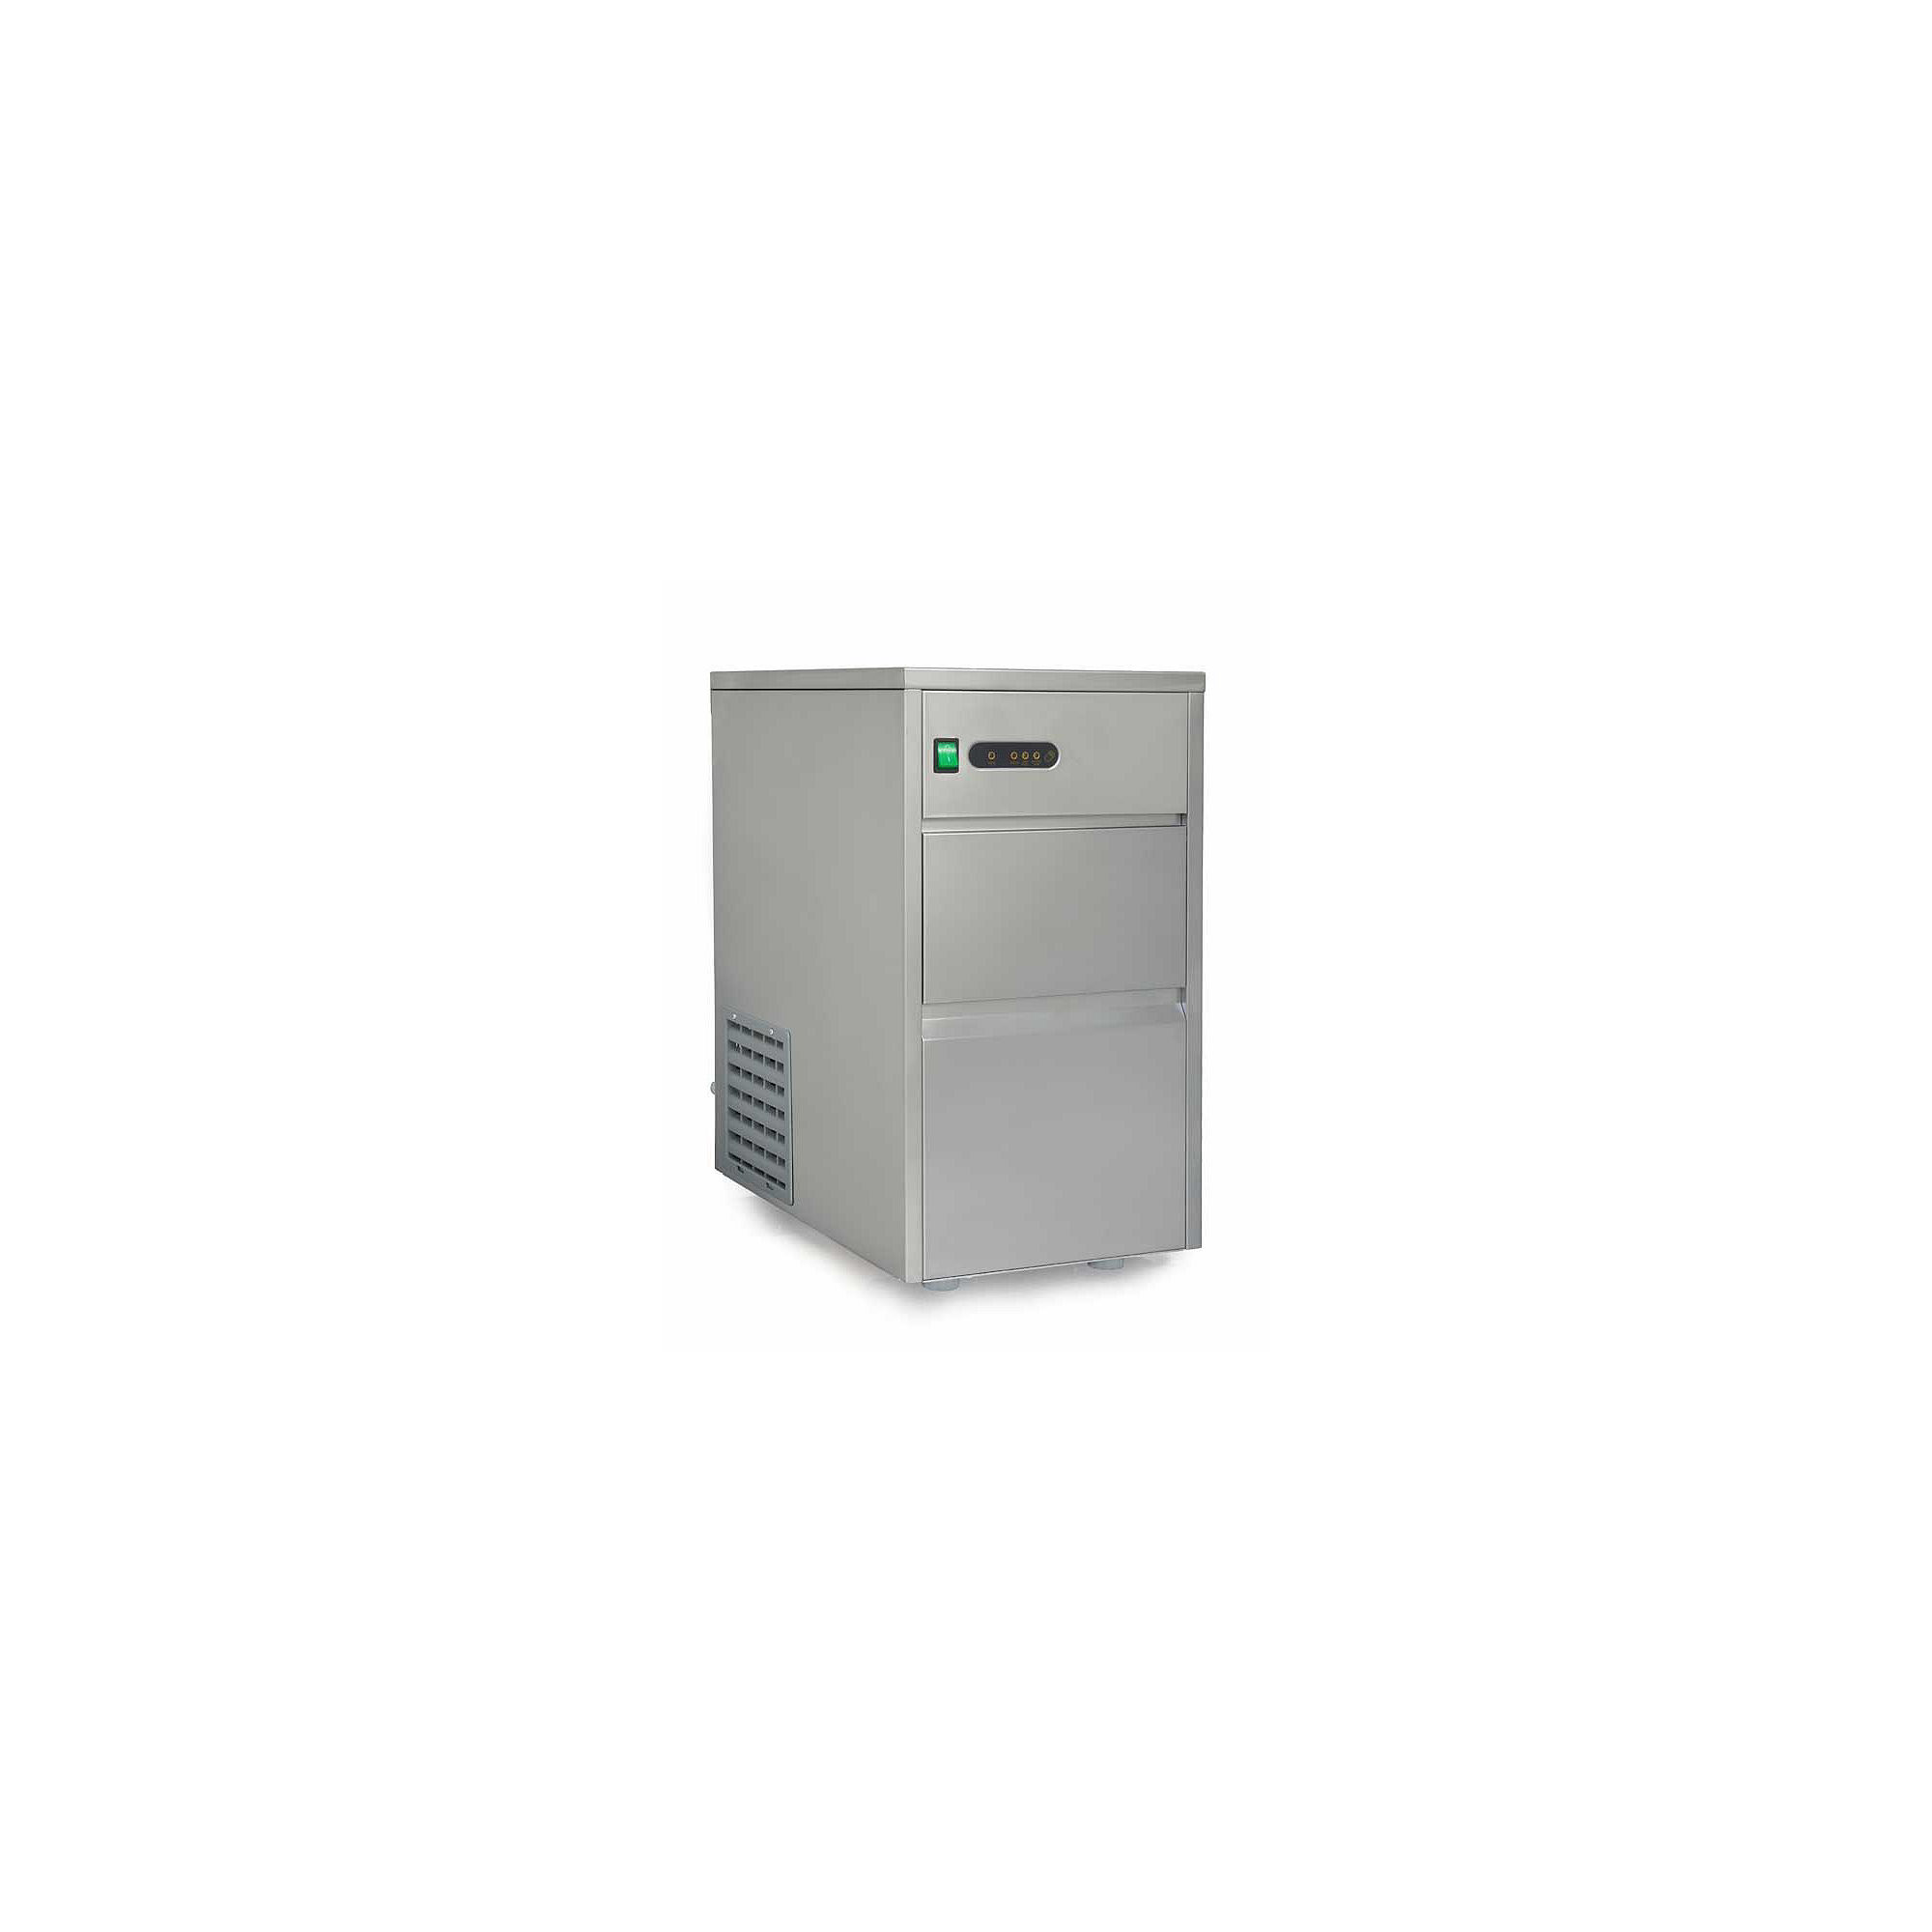 SPT IM-440C: 44 lbs Automatic Stainless Steel Ice Maker